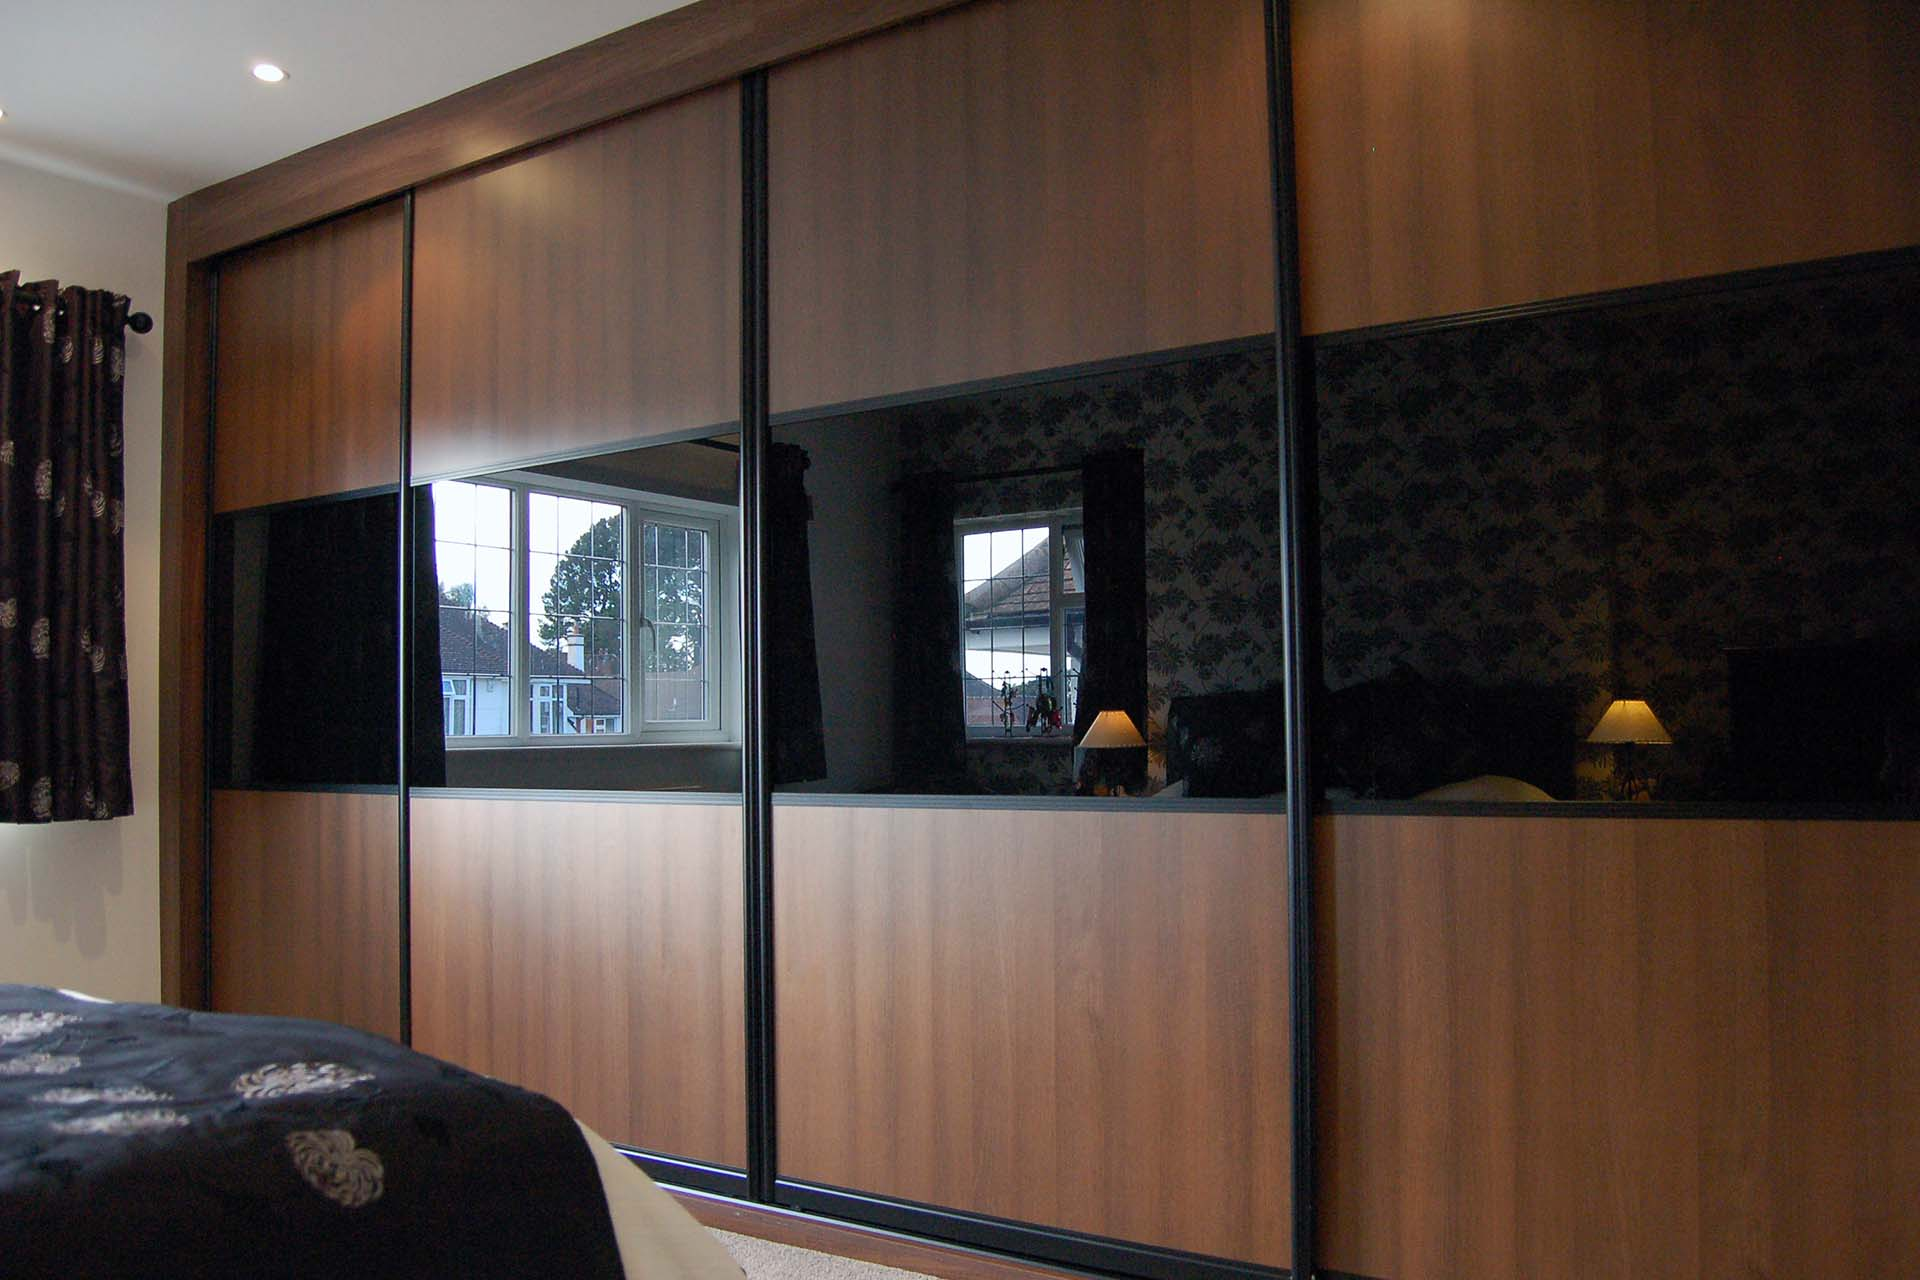 living room designer tool how to design with fireplace and tv hinged wardrobes versus sliding